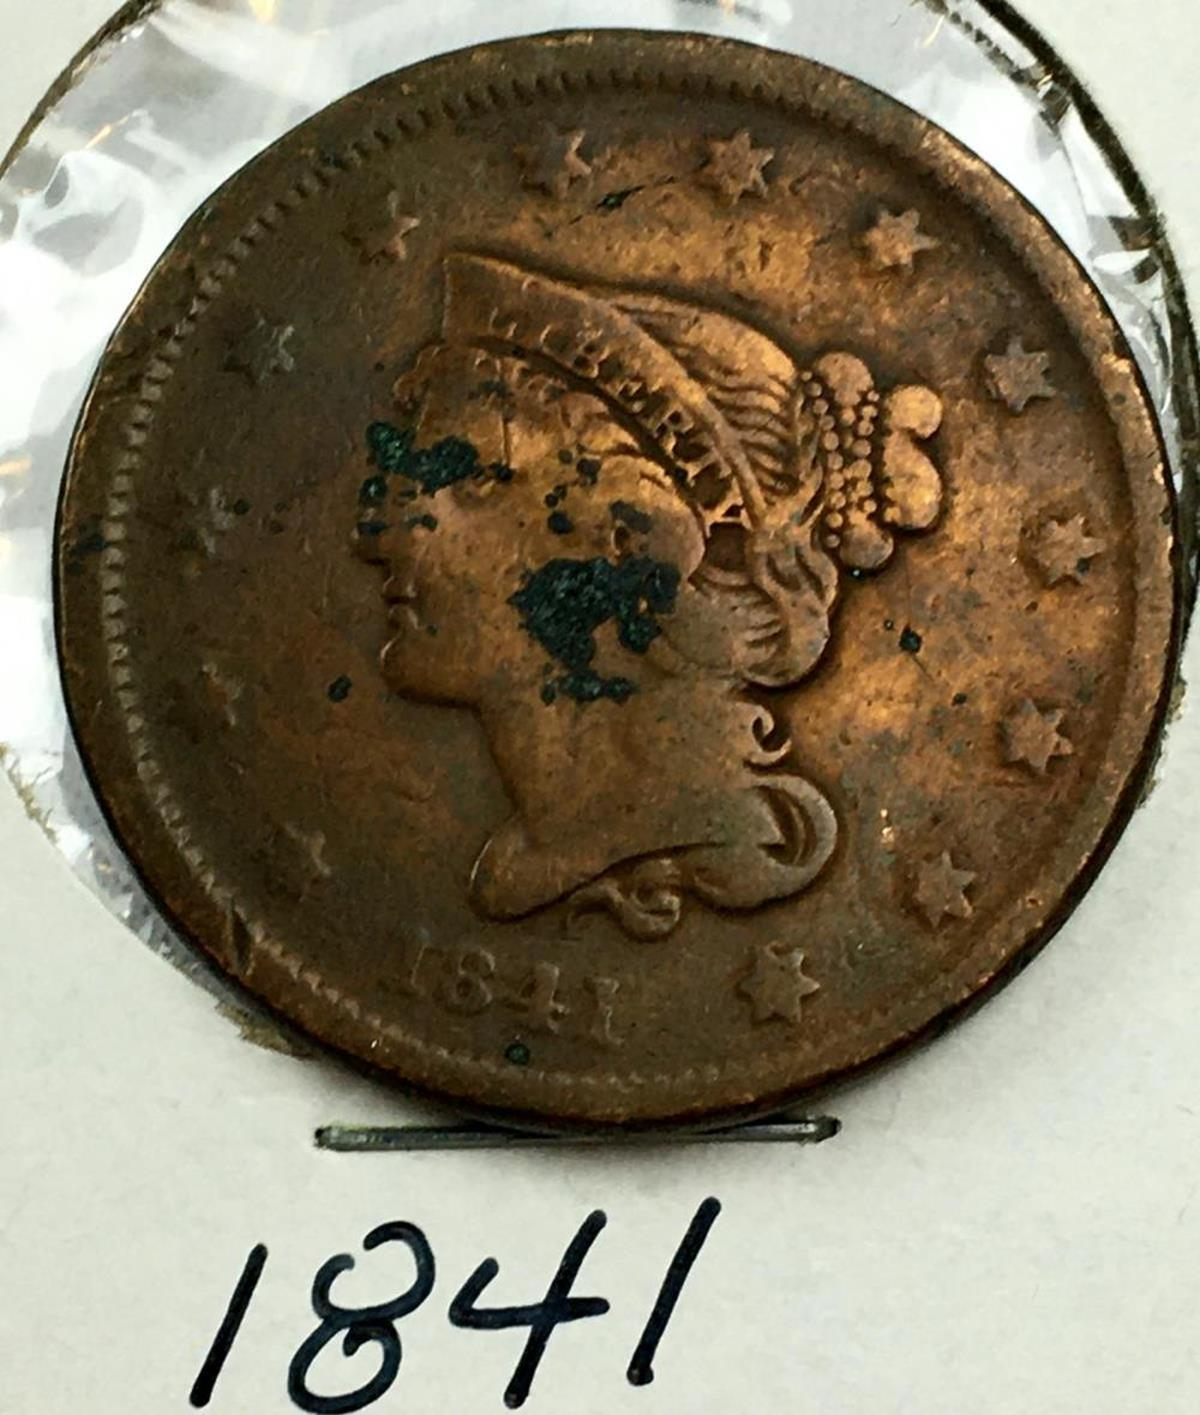 1841 US 1c Braided Hair Liberty Head Large Cent (Small Date)